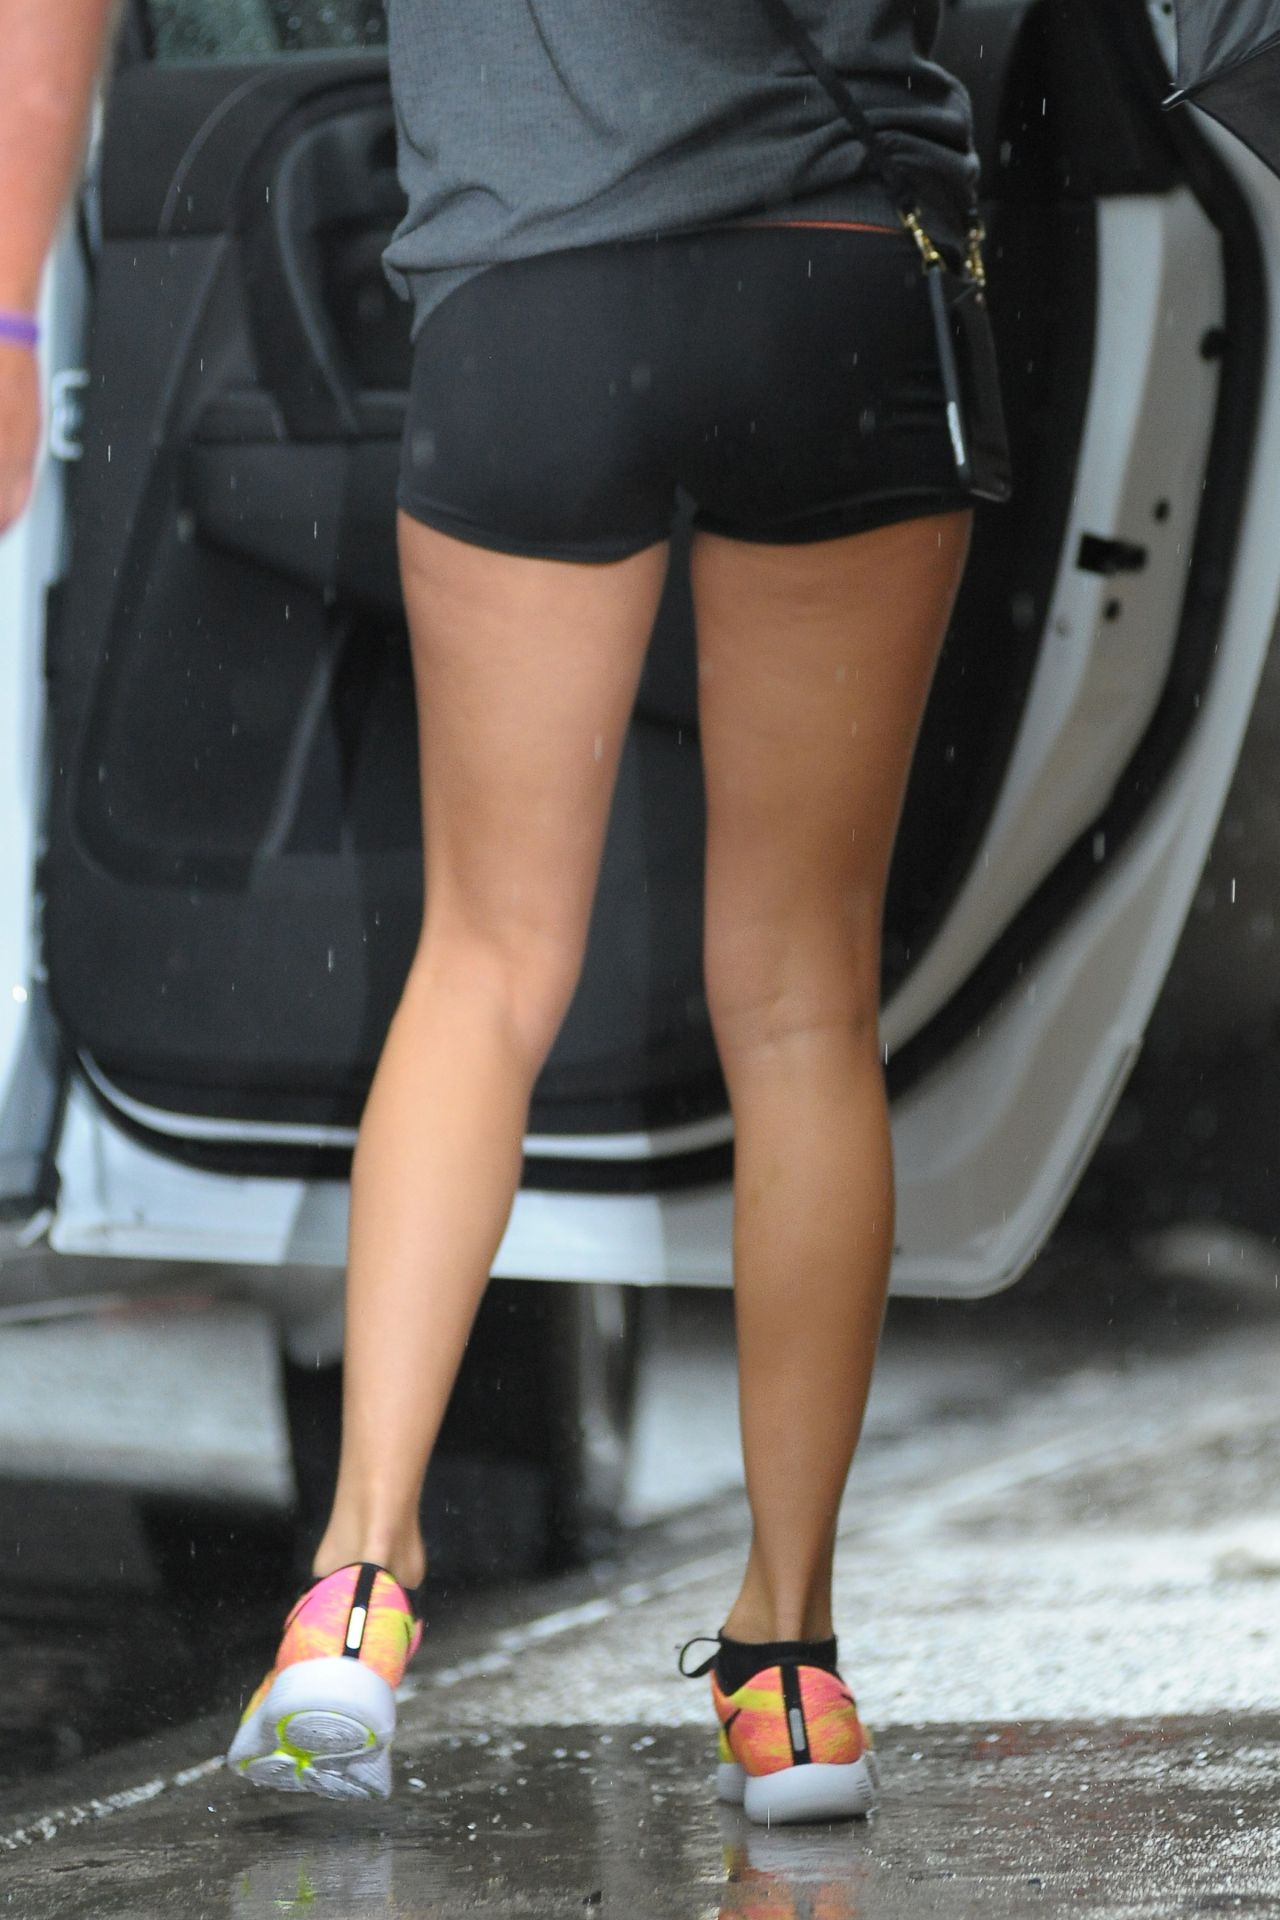 Taylor Swift Shows Off Her Legs - Morning Visit to Gym in ...